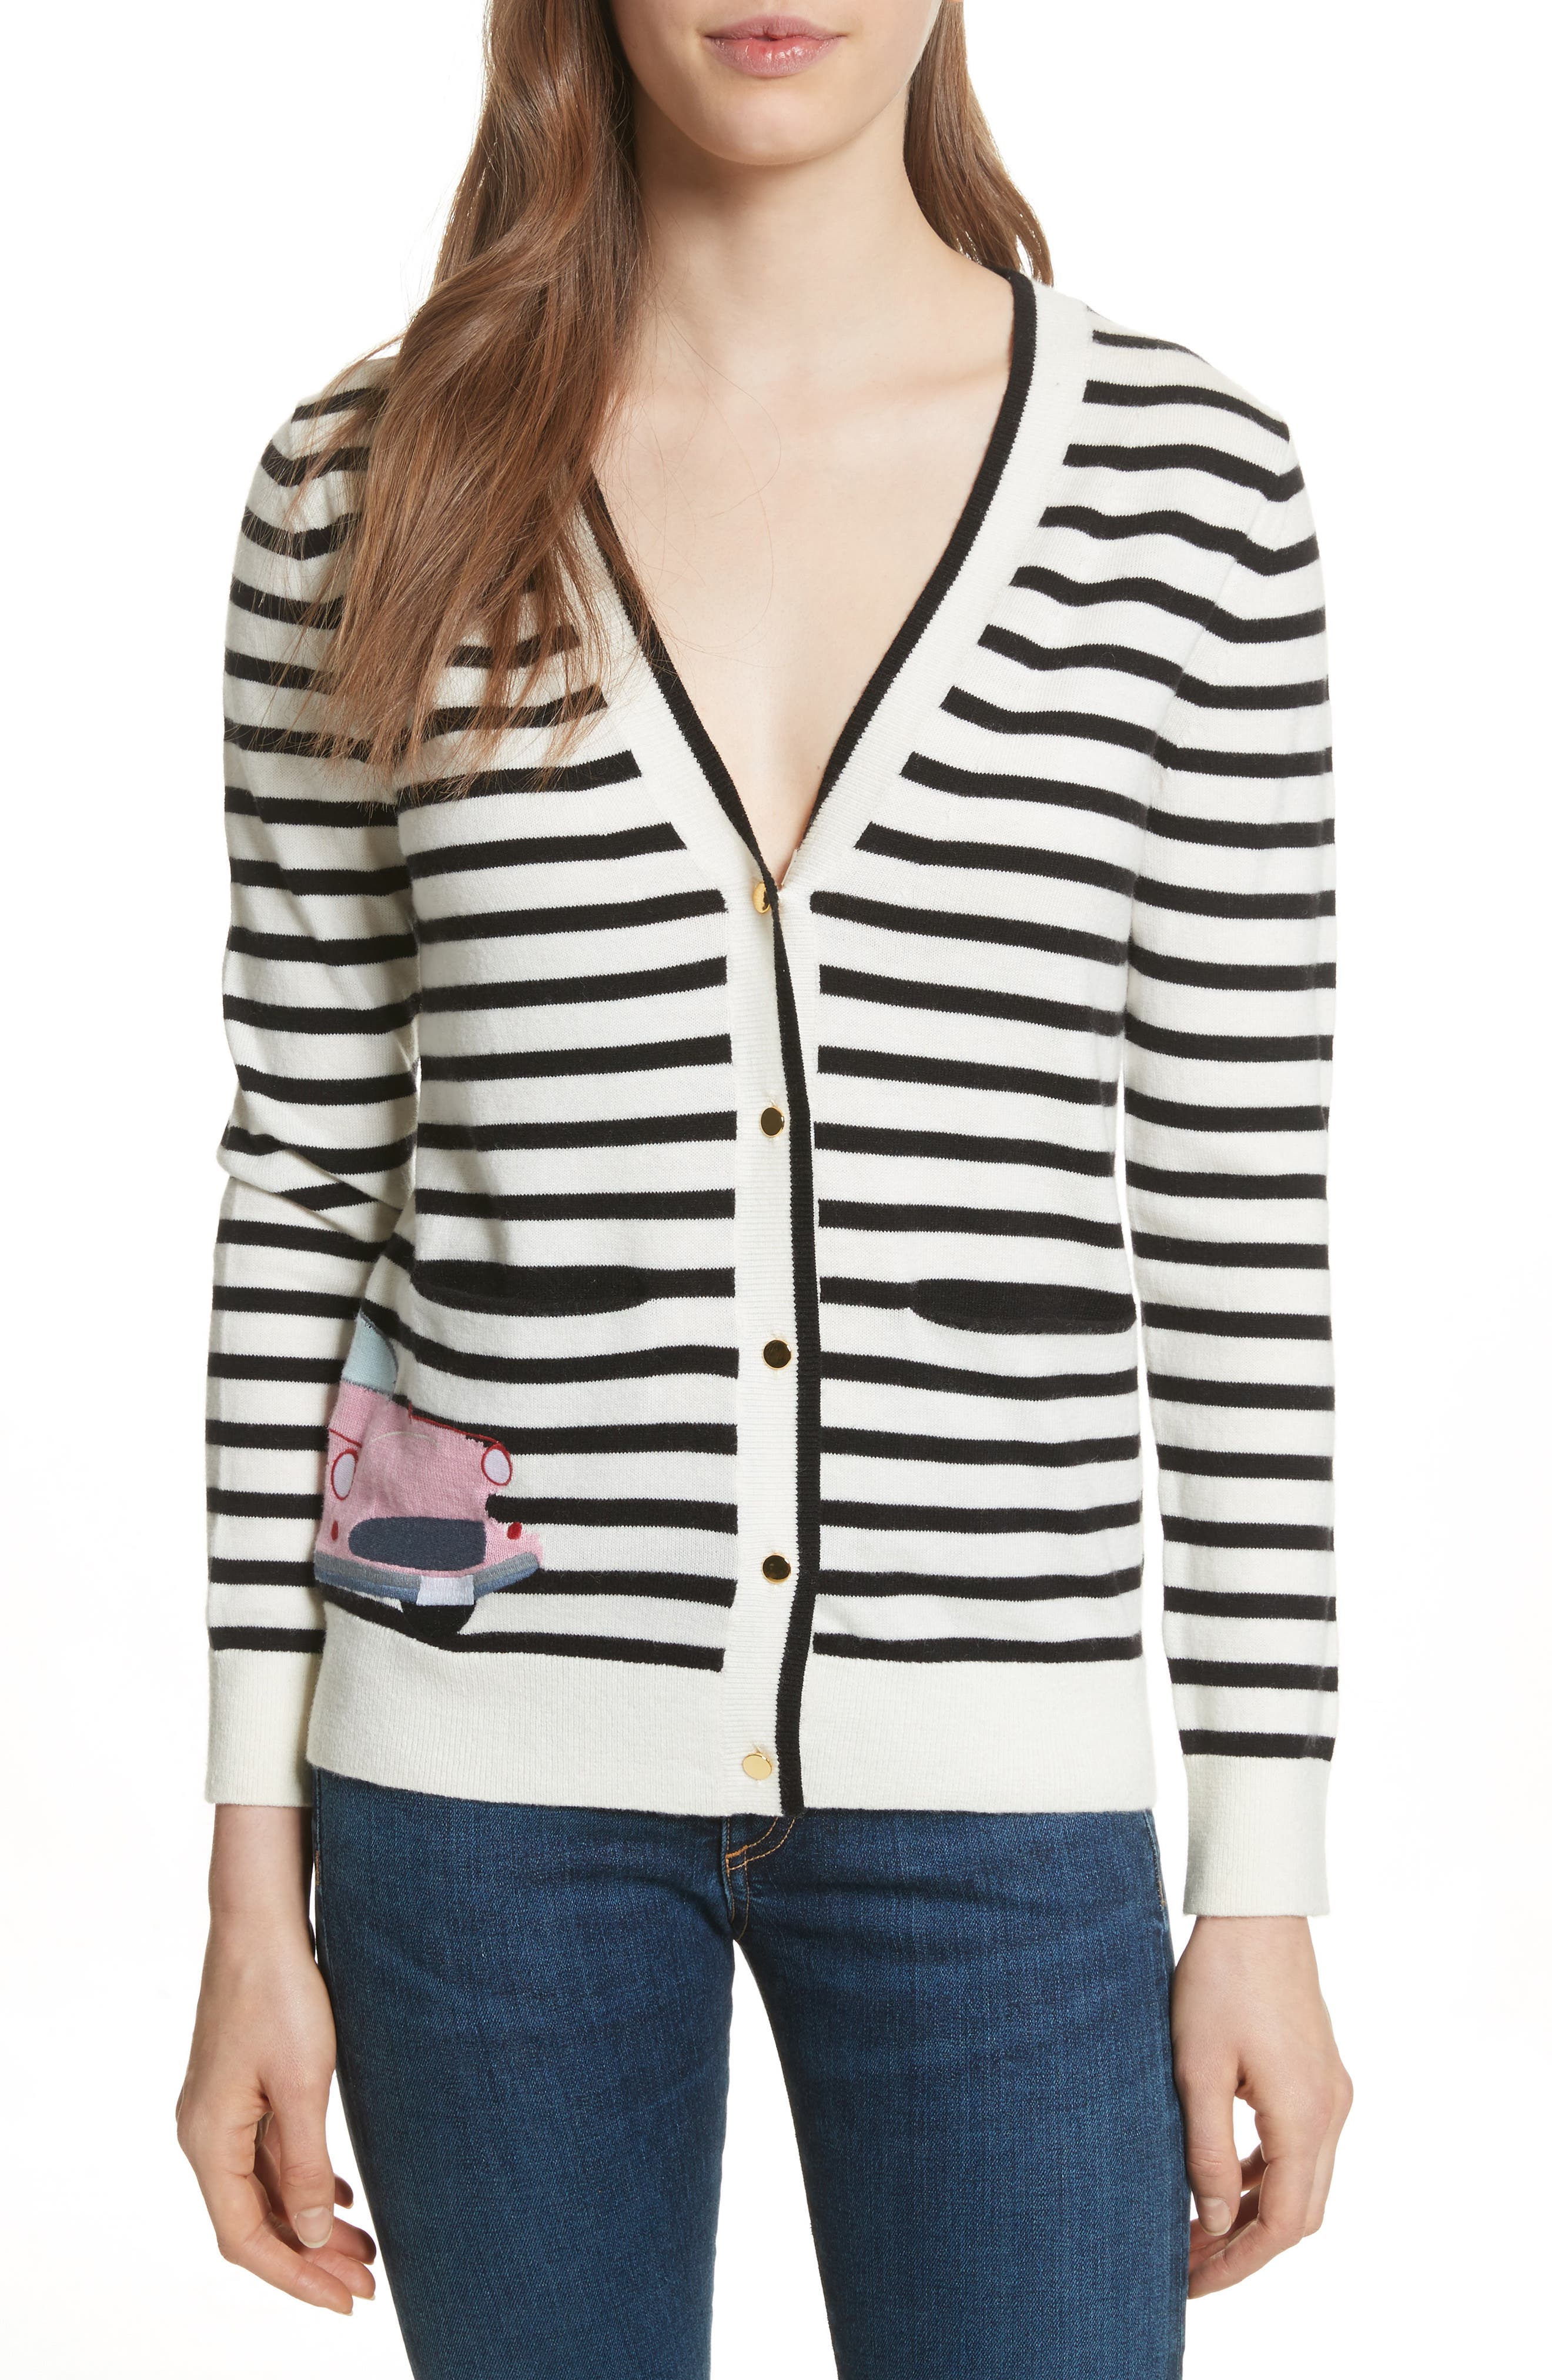 car cardigan,                         Main,                         color, Black/ Cream Multi